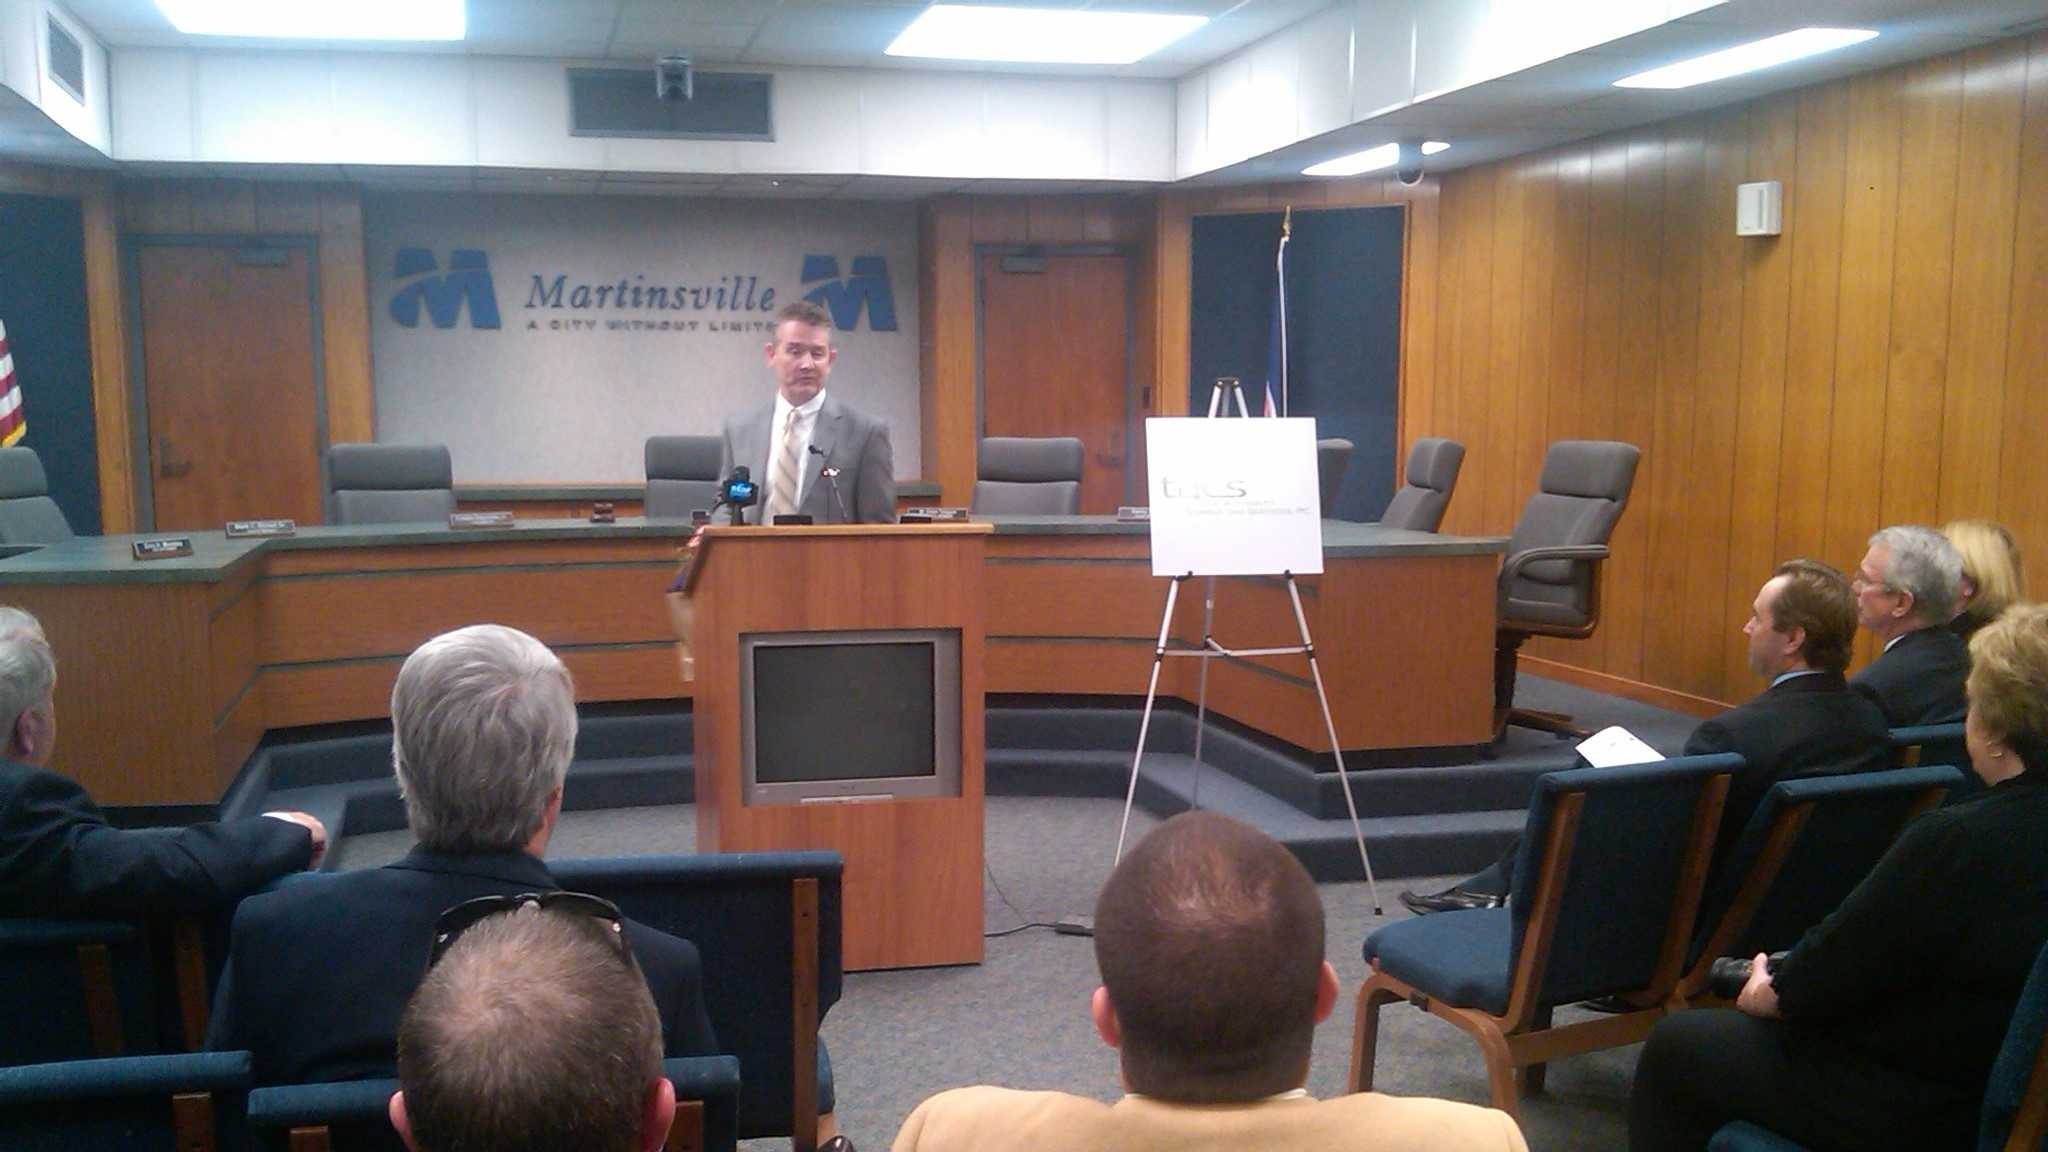 The jobs announcement took place Tuesday afternoon in Martinsville. (Photo by WXII's Jeff Amernick)